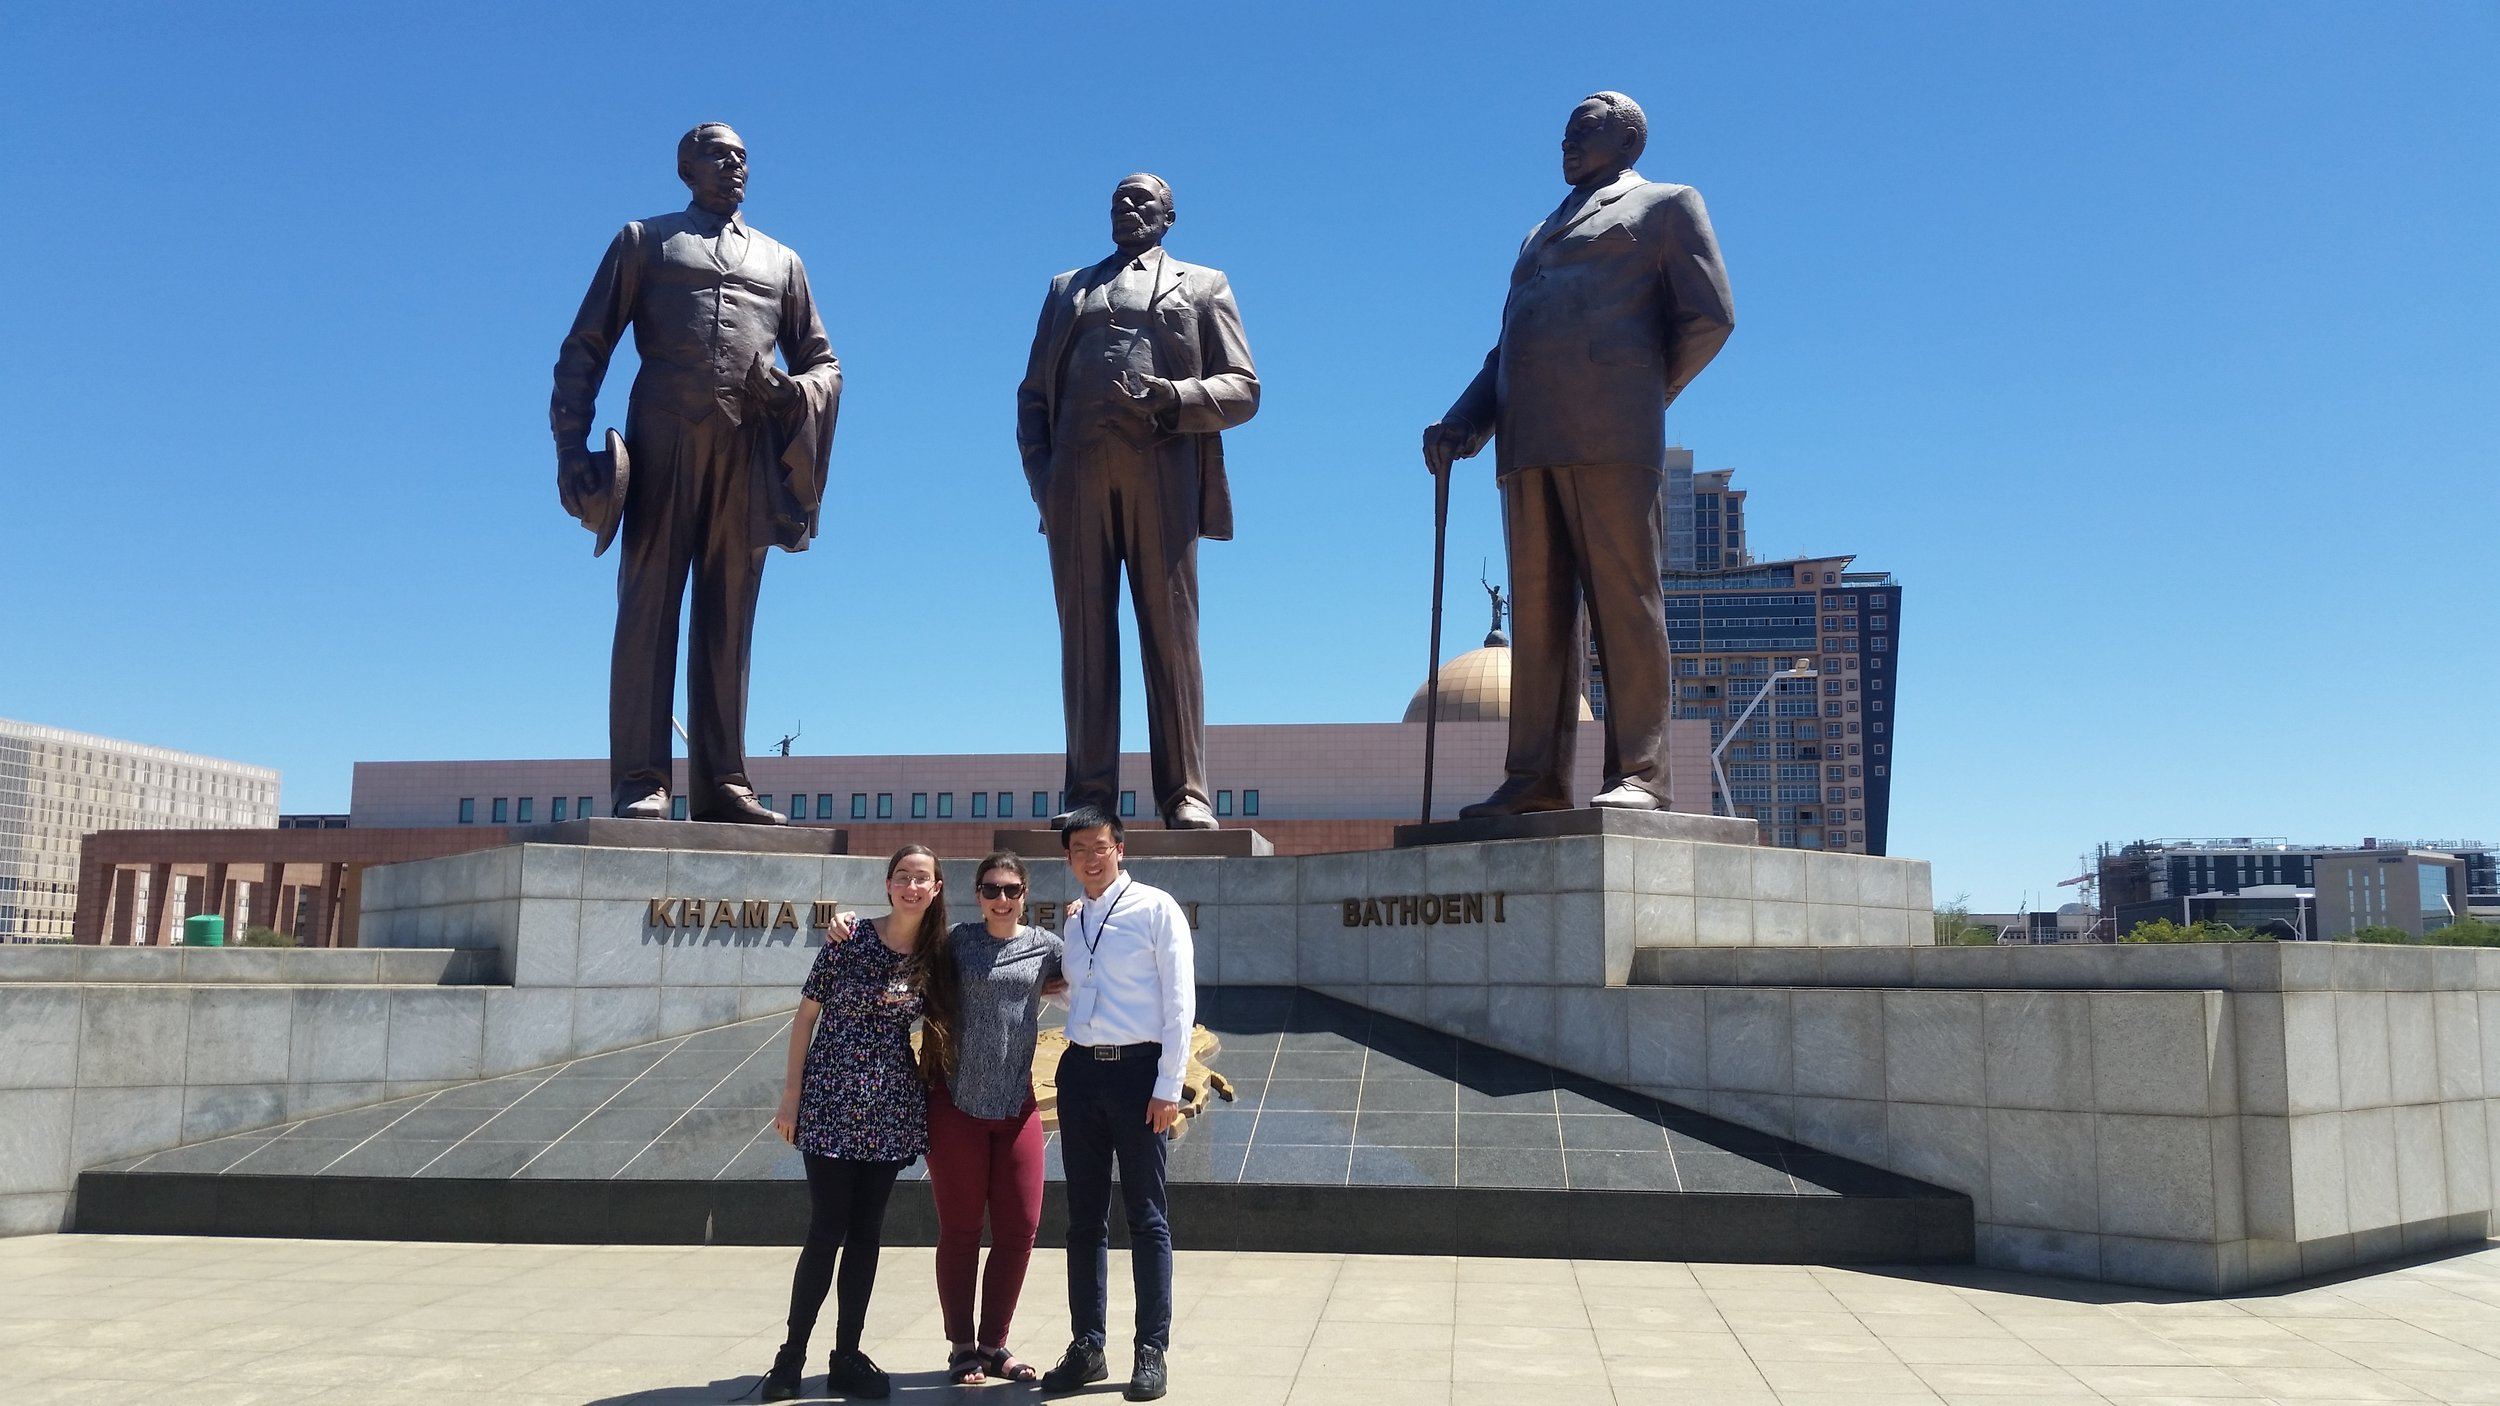 From left: Alexandria Cruz, Alex Hsain, and John Wang. Posing in front of the three chiefs statue in downtown Gaborone, Botswana.